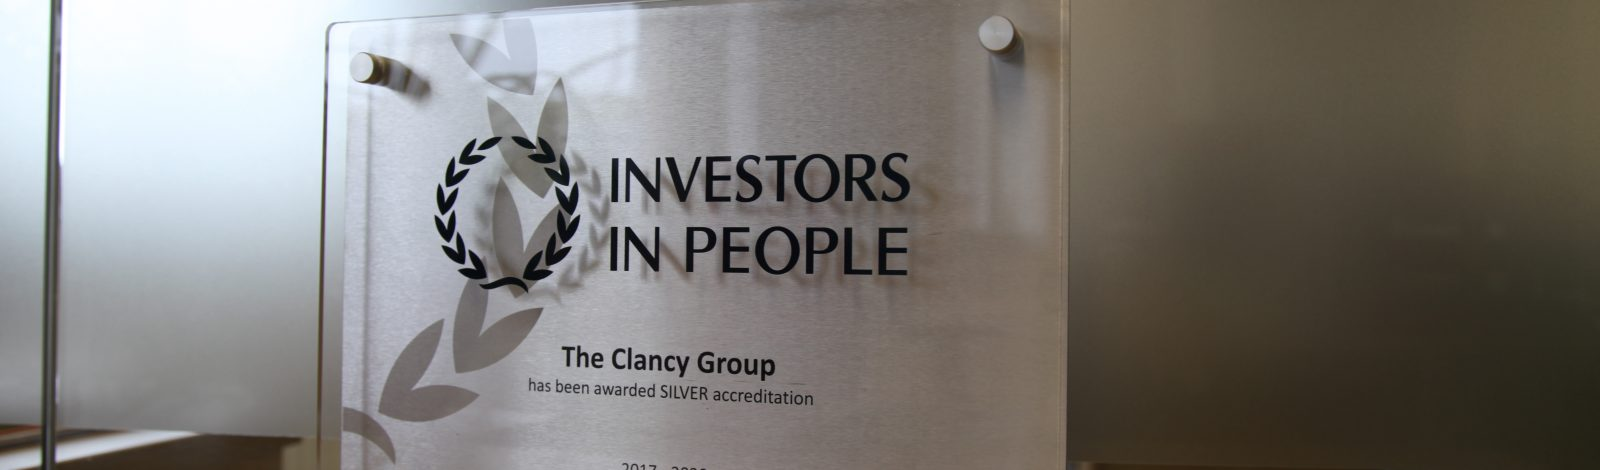 The Clancy Group Awarded Silver - Clancy Docwra